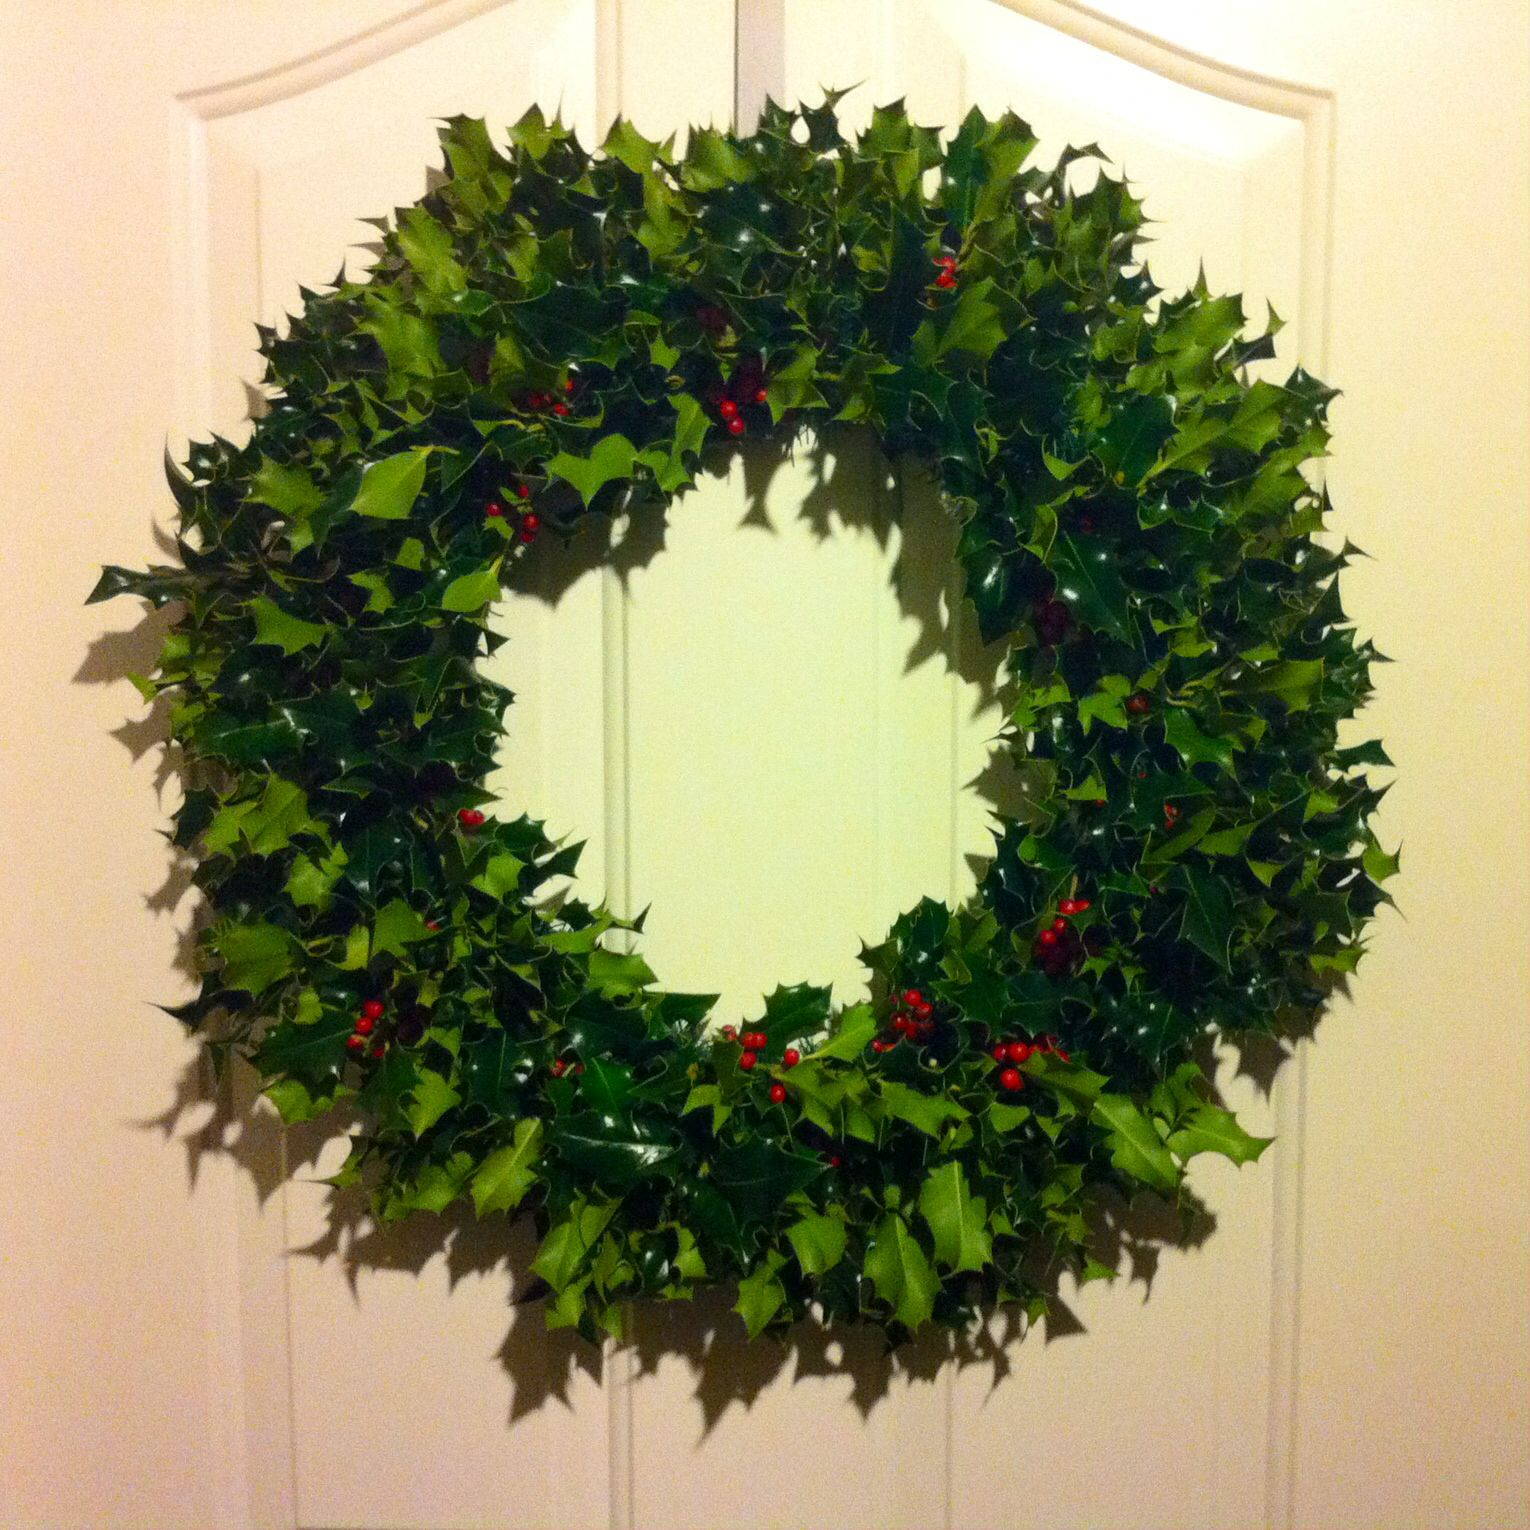 Real holly wreath. Painful DIY because it's difficult to use gloves while arranging the holly into the wire wreath. But overall I'm happy with the result!